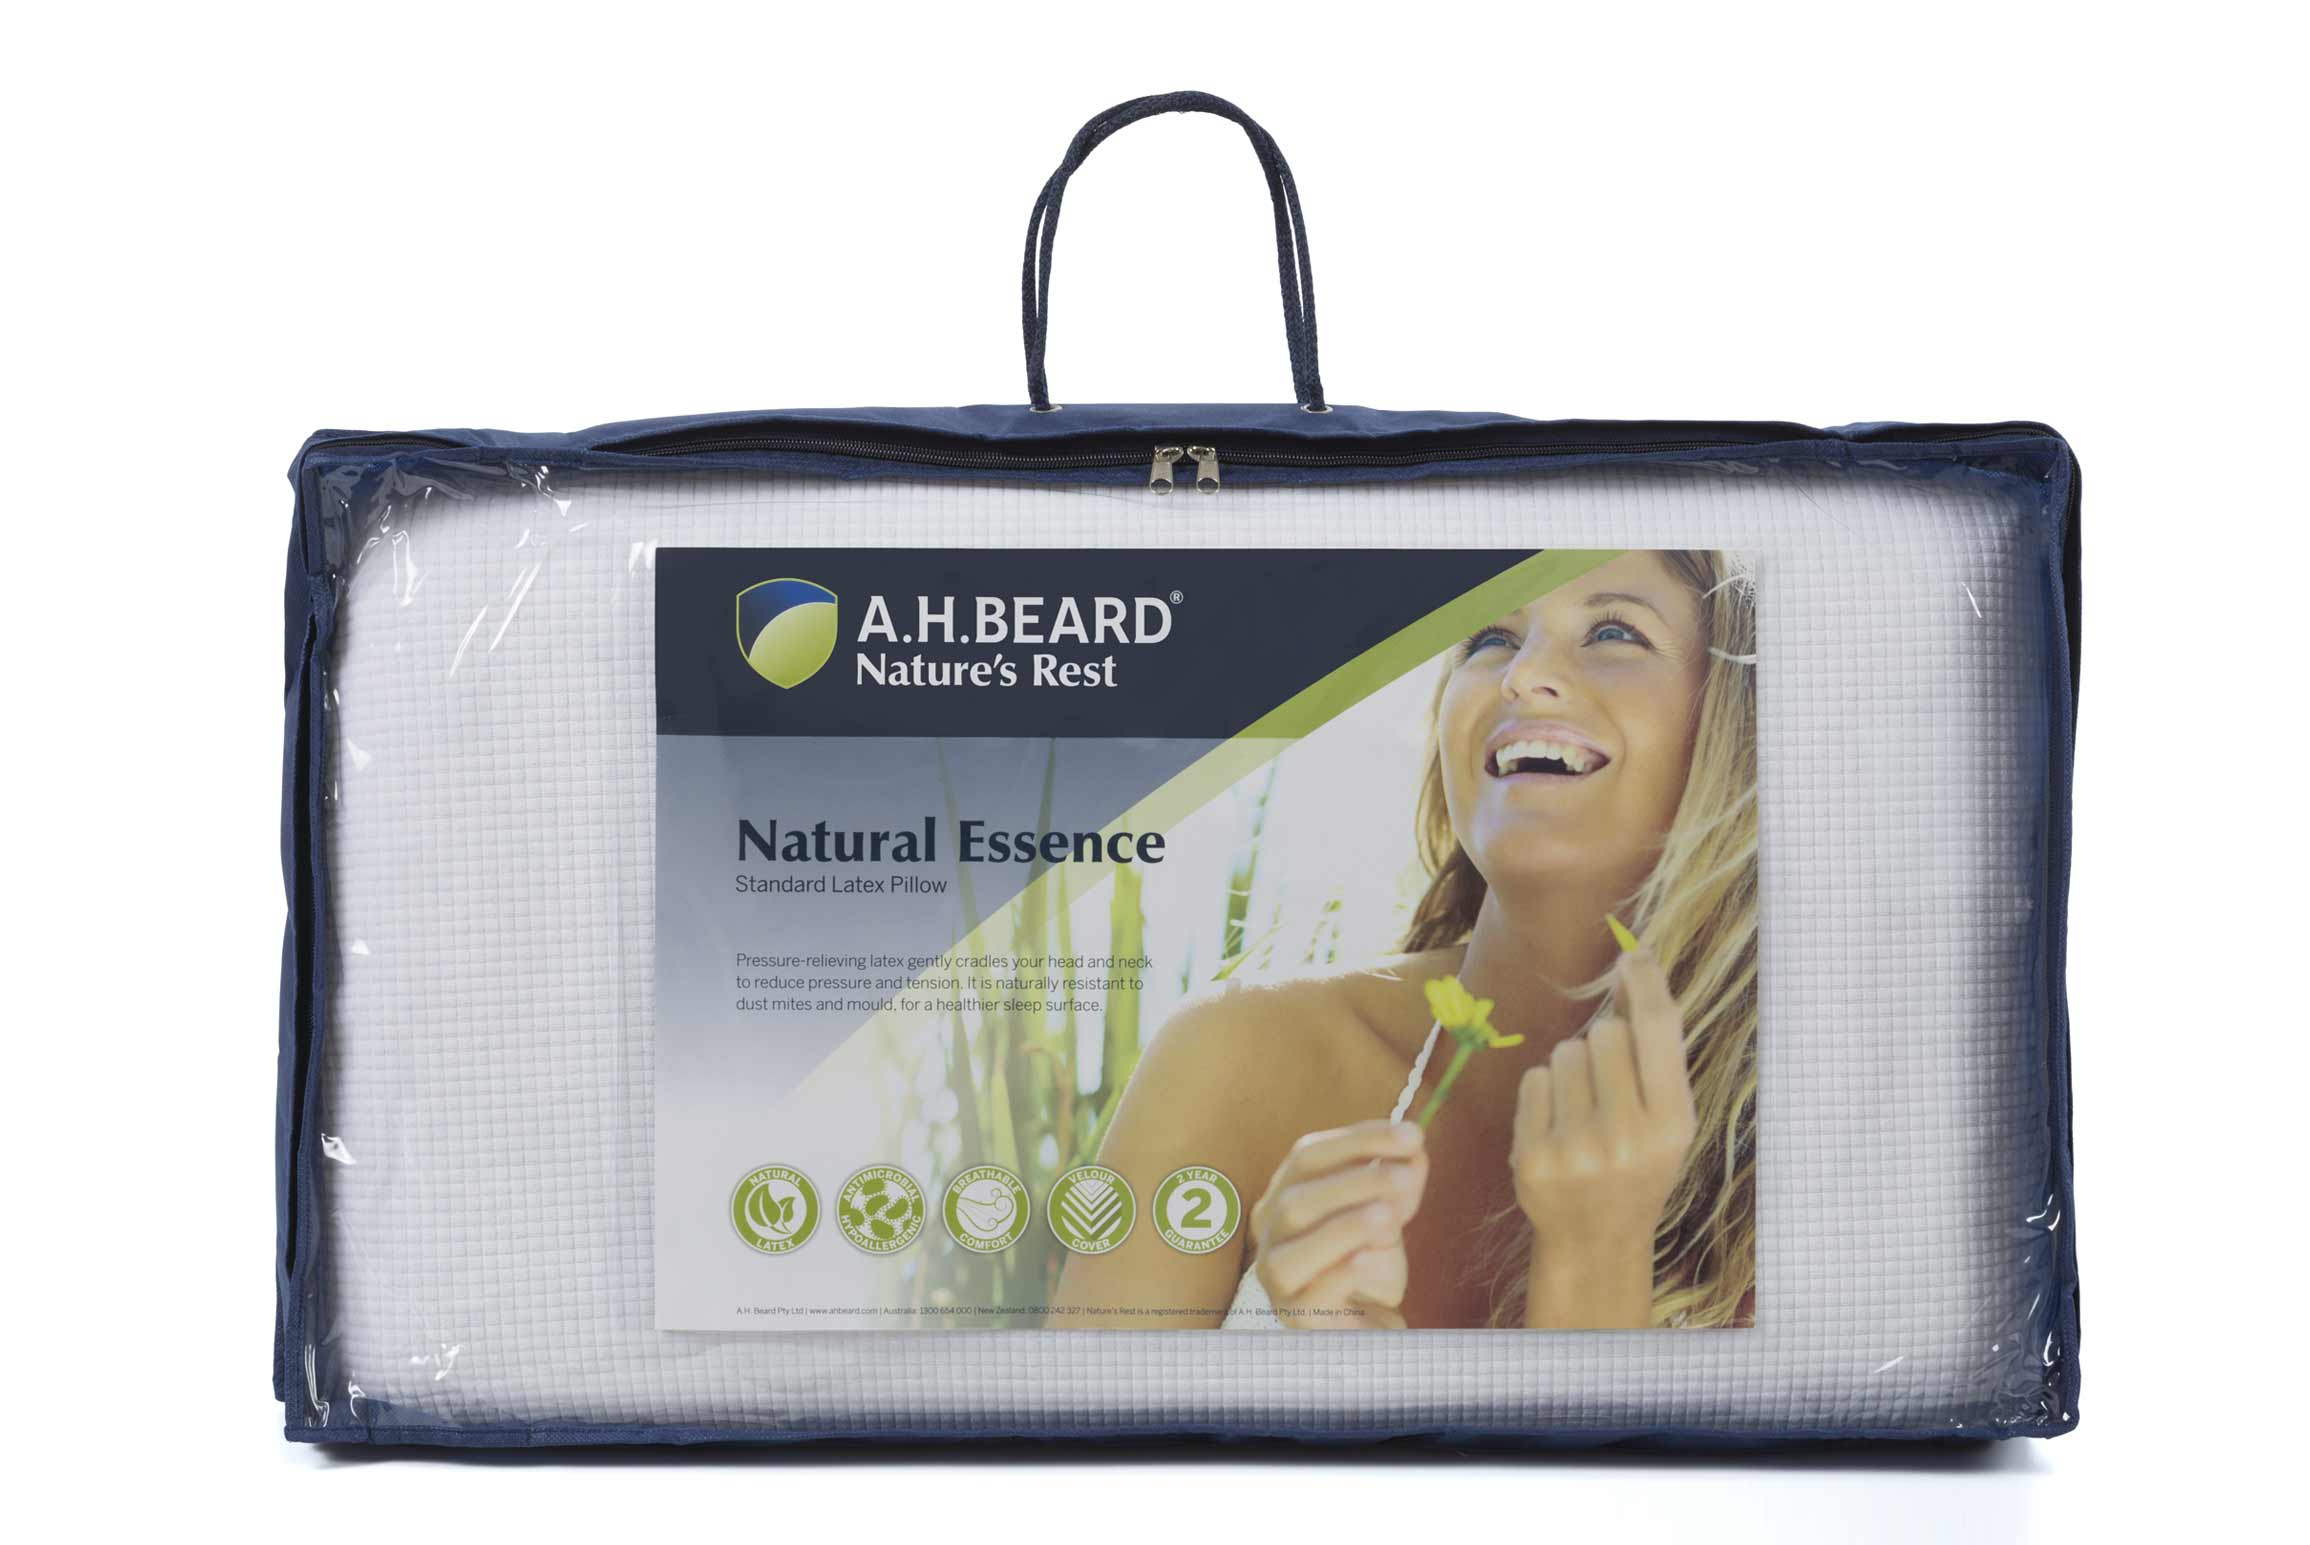 ah beard natural essence pillow latex accessories forty winks